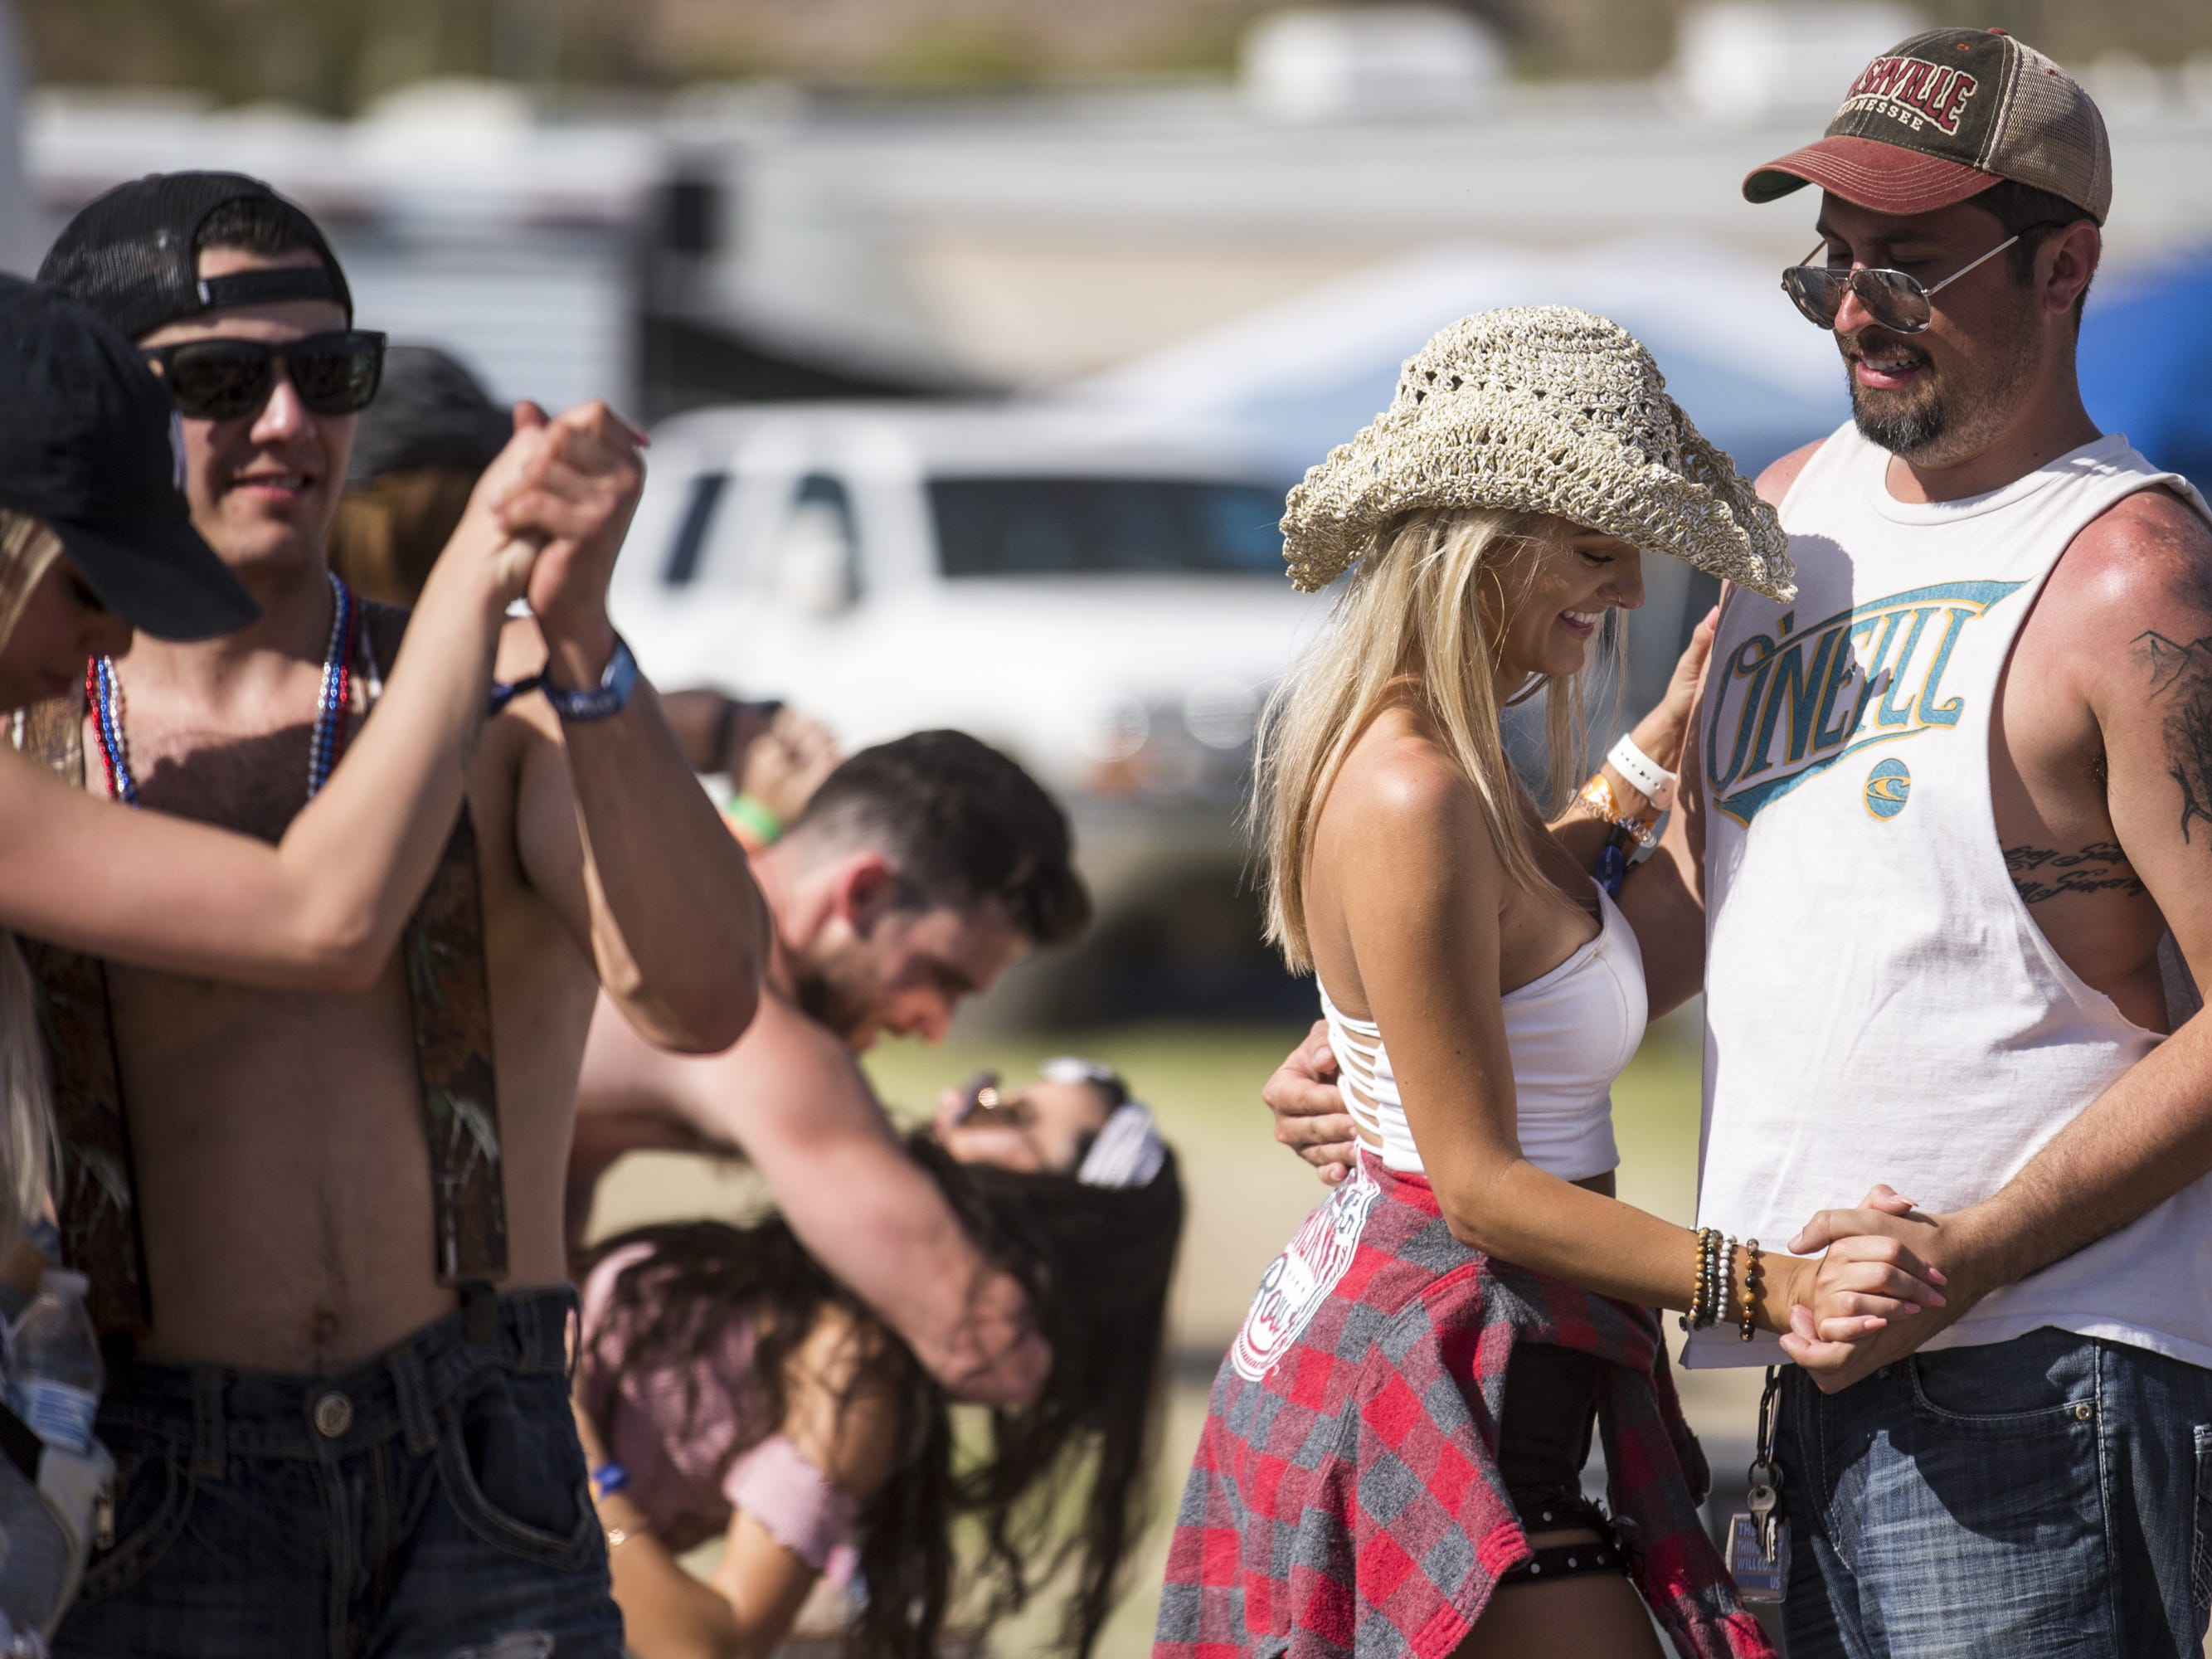 Festival-goers dance at the Crazy Coyote campground on Sunday, April 14, 2019, during Day 4 of Country Thunder Arizona in Florence, Ariz.